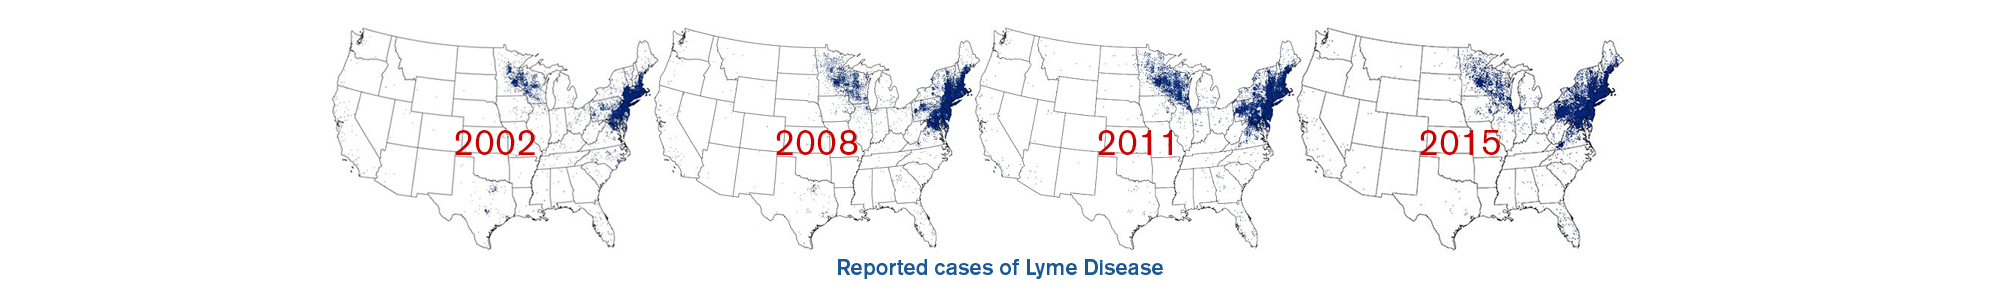 Reported cases of Lyme